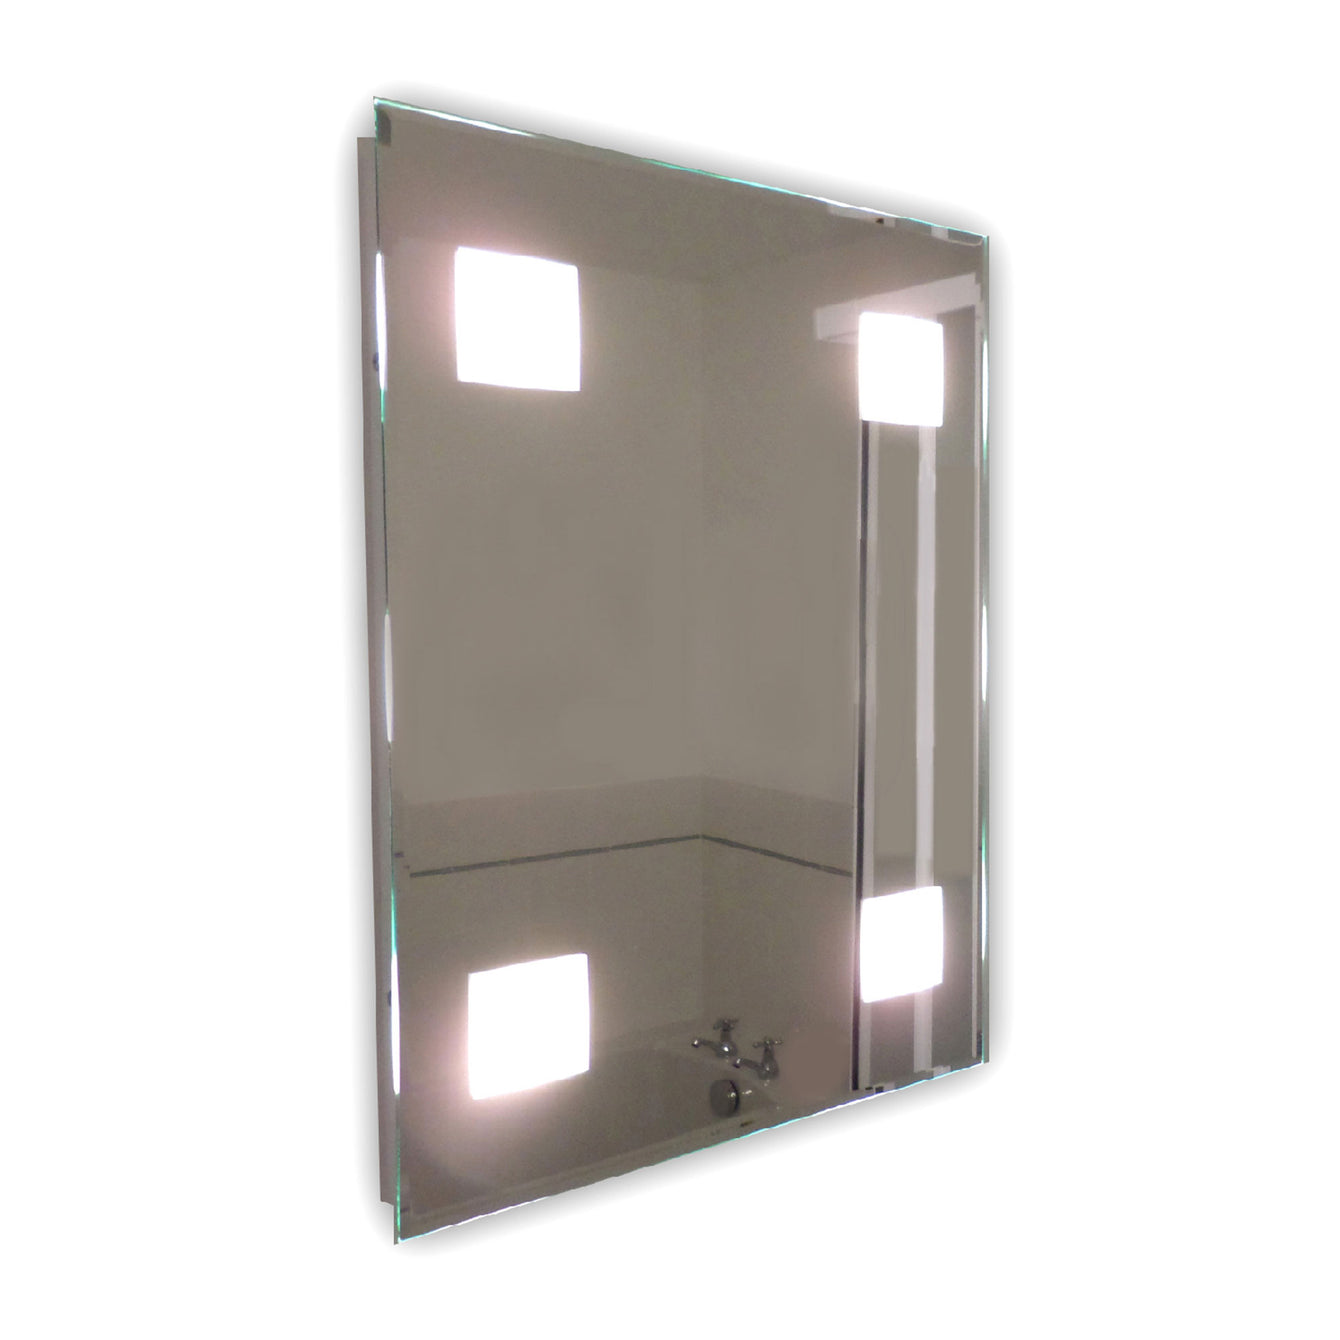 Snaresbrook Rectangular Mirror LED Light - Buy It Better Standard